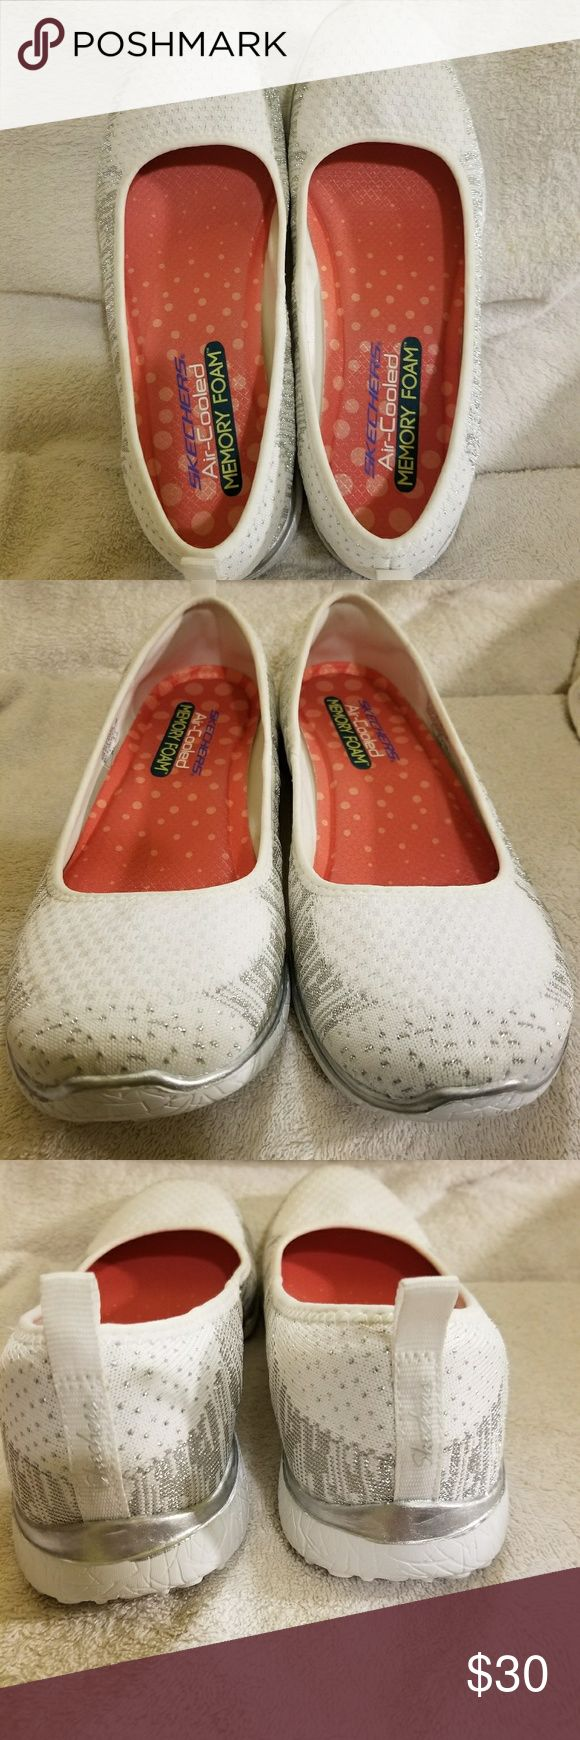 Beautiful Skechers Memory Foam Flats 8.5 NWOT! Gorgeous white Skechers with silver accents. Just in time for Spring. Look great on and SO comfortable! I never wore these. Tags are still stapled to the soles. Smoke-free home. Thanks for looking! Skechers Shoes Sneakers